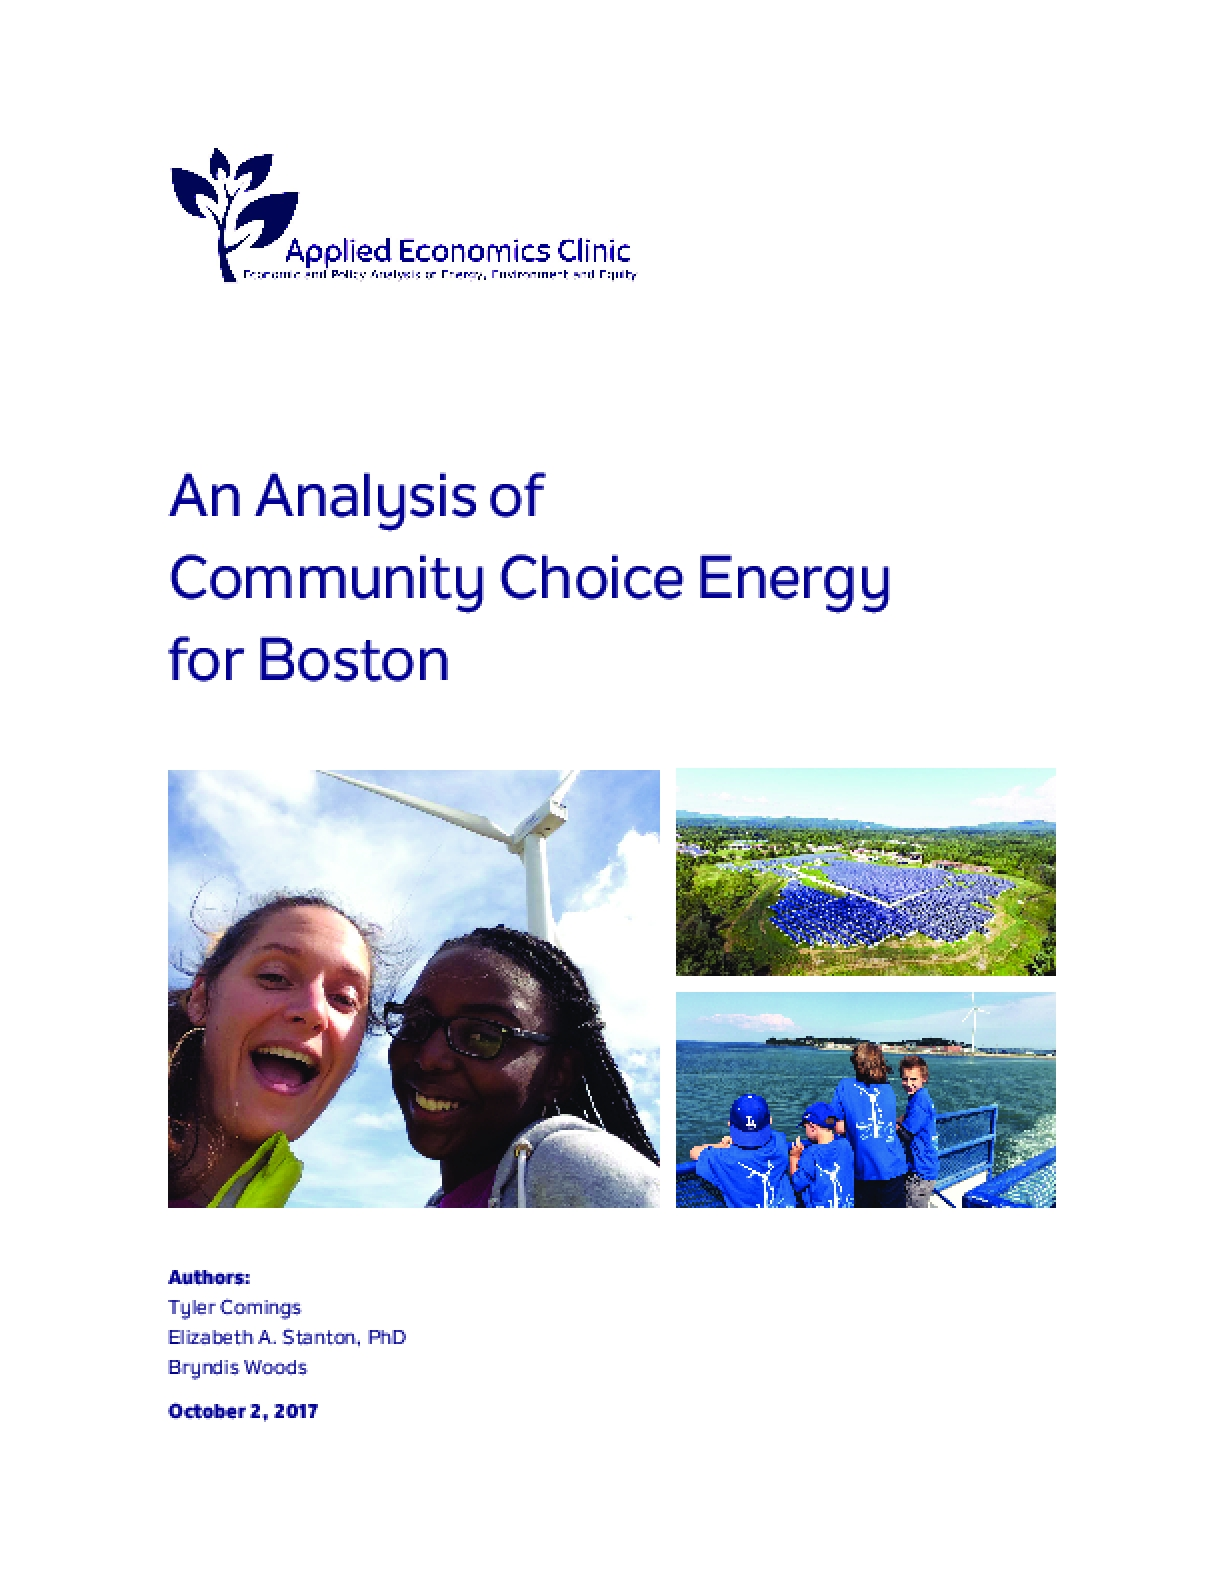 An Analysis of Community Choice Energy for Boston